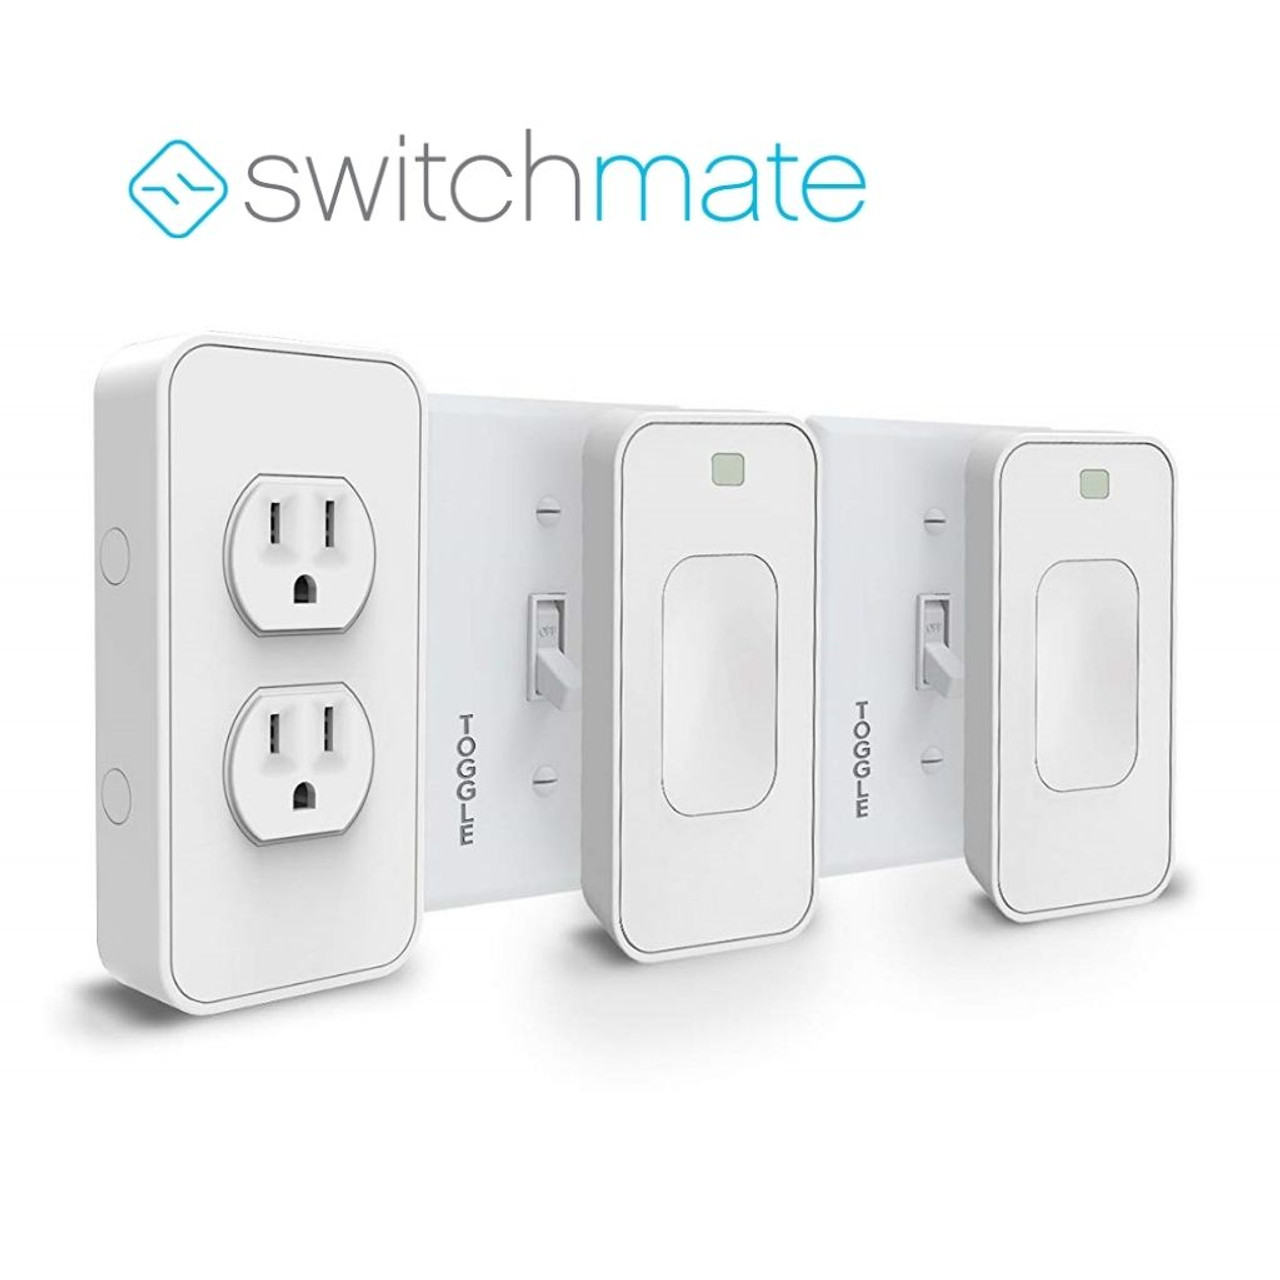 Switchmate Smart Home 3.0 Kit with Smart Switches & Power Outlet $22.99 (82% OFF)